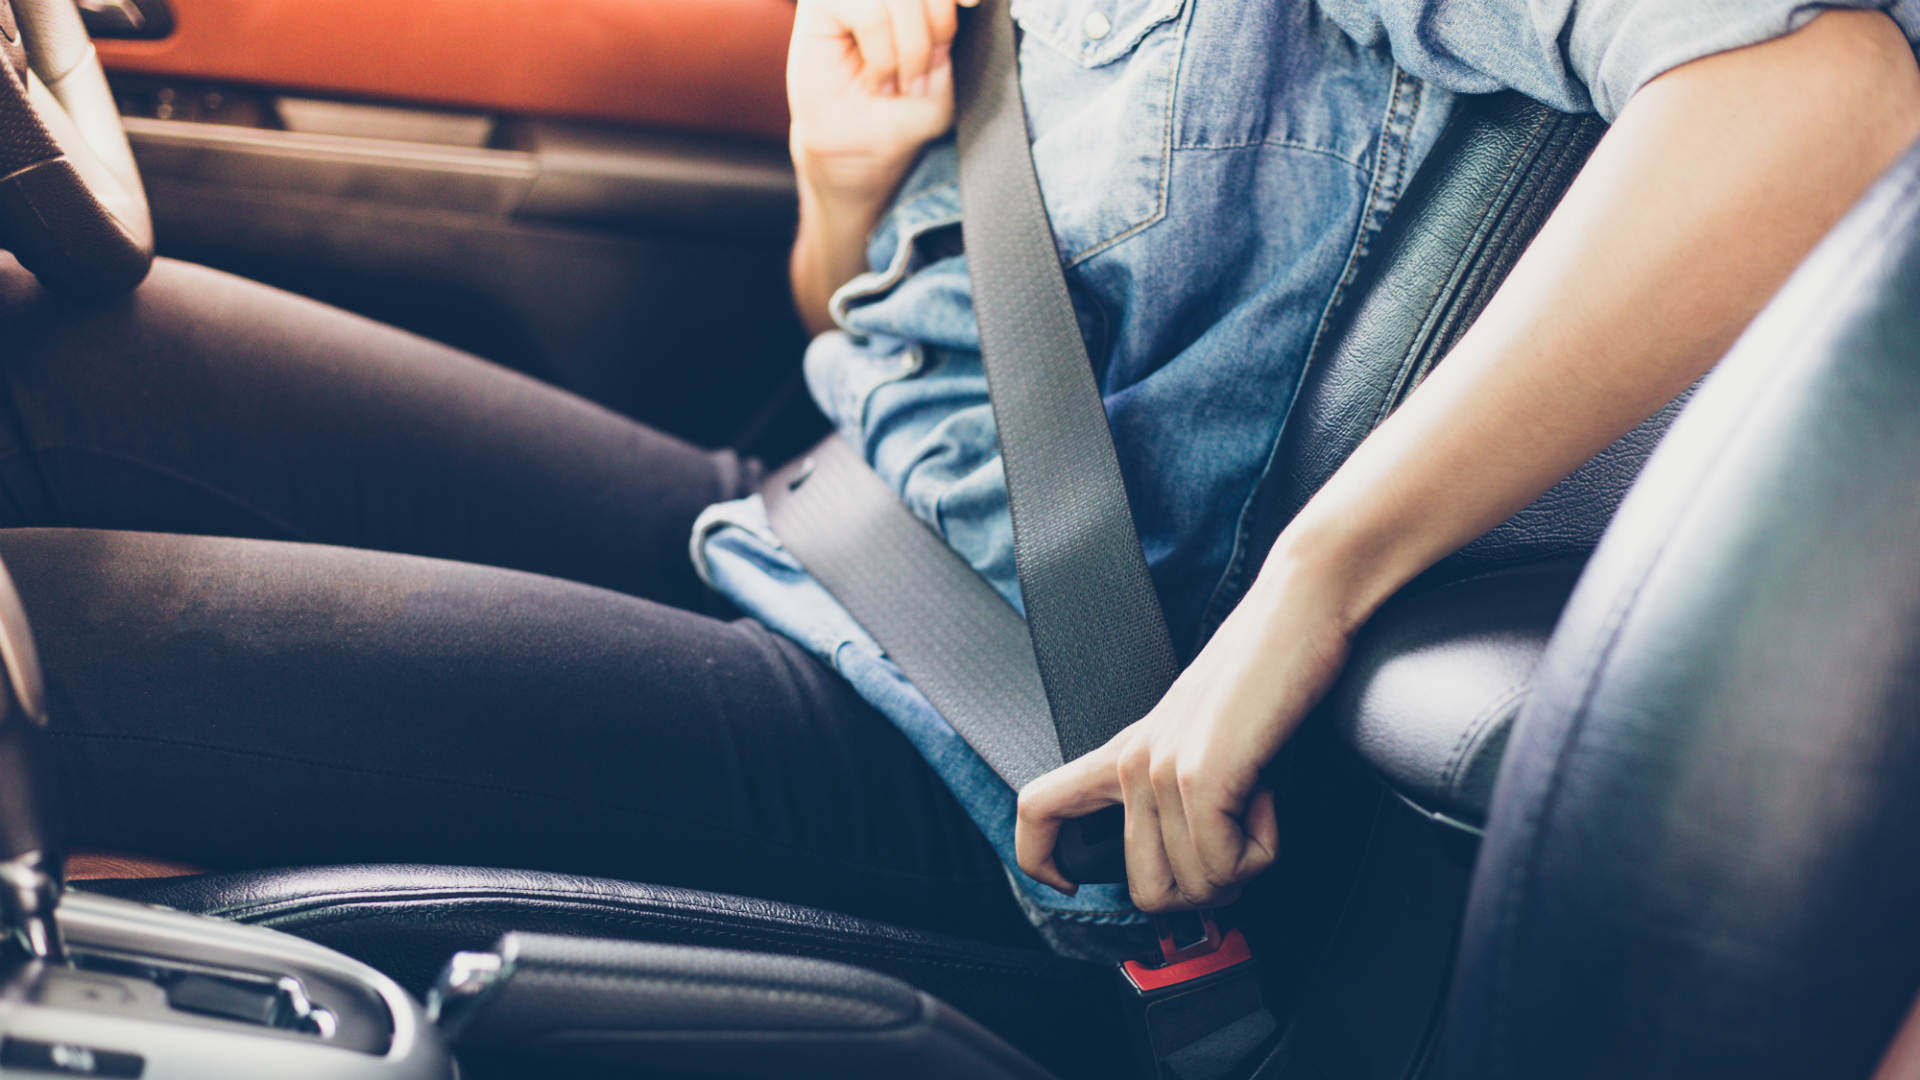 Road safety charity welcomes tougher seatbelt laws